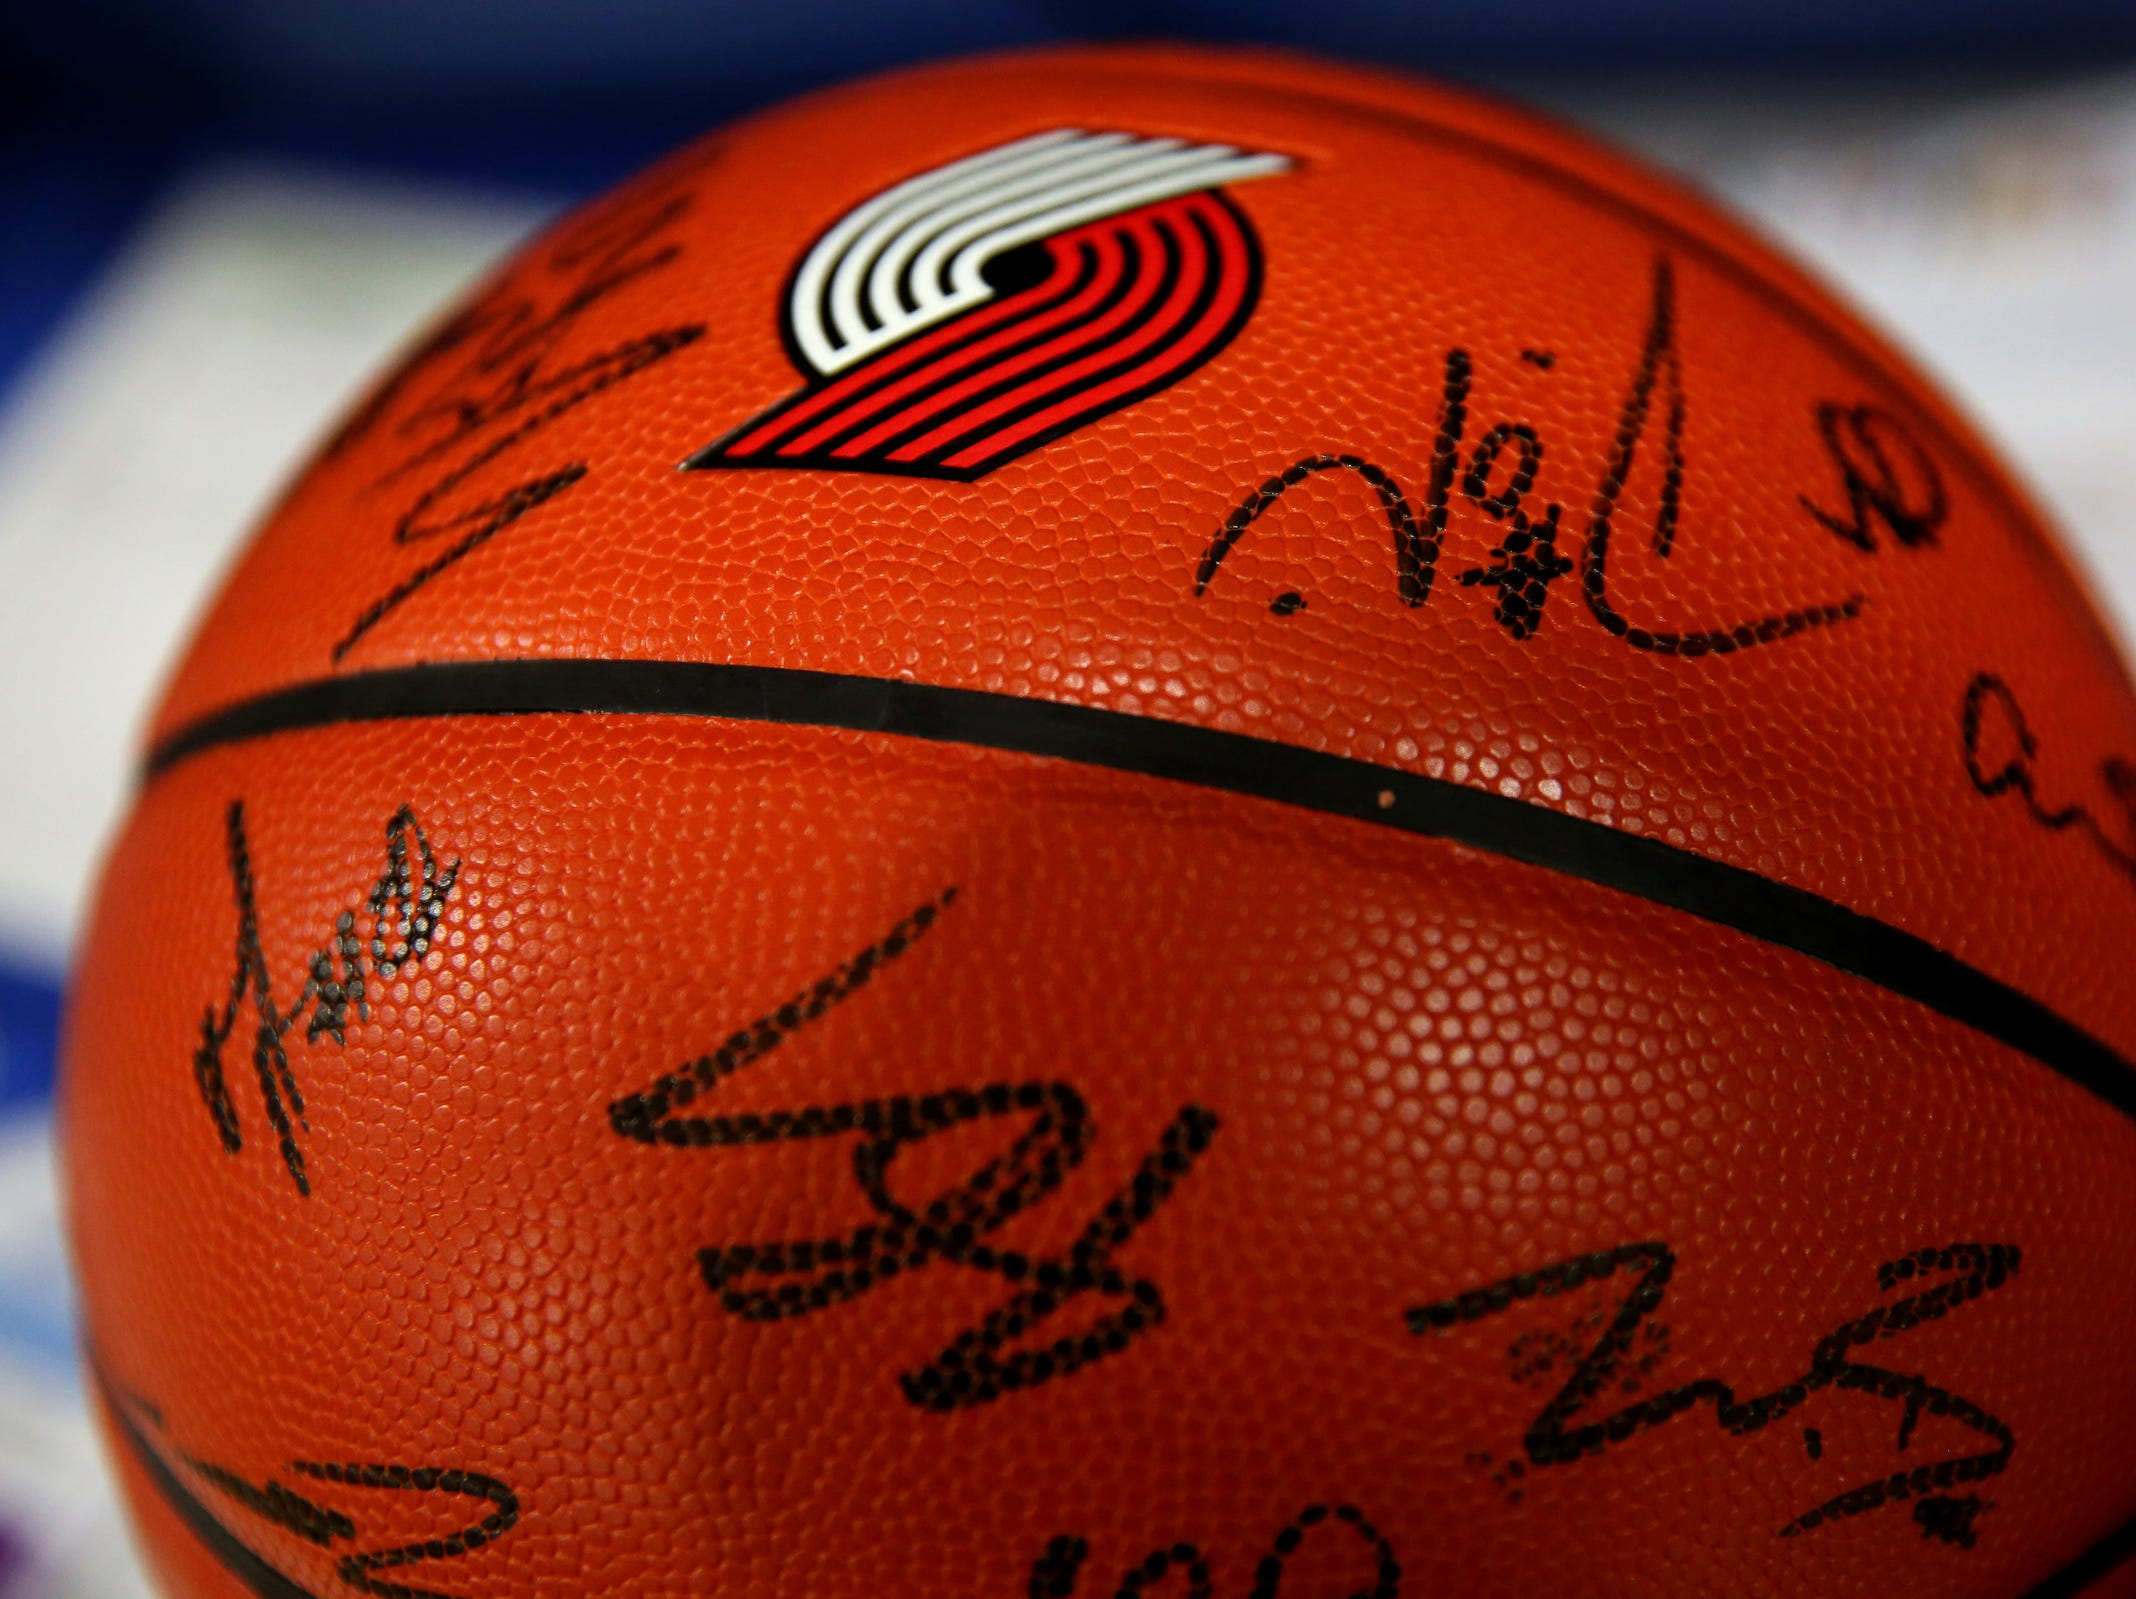 A basketball autographed by Blazers players is ready to be auctioned off during a break in the second annual House vs. Senate charity basketball tournament at the Boys & Girls Club in Salem on March 13, 2019. The tournament raised more than $10,000 for the Oregon Alliance of Boys & Girls Clubs.